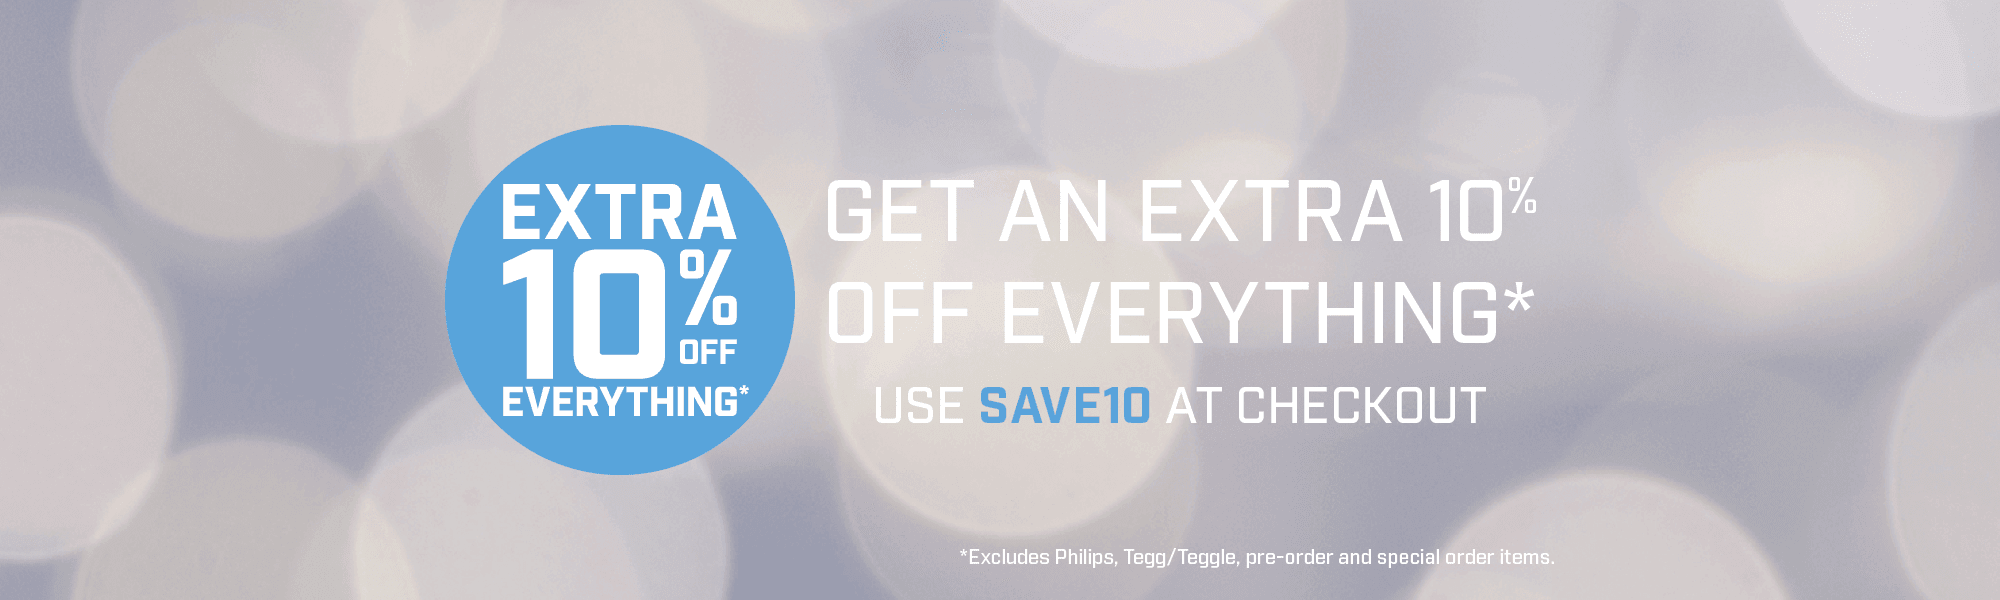 Extra 10% Off Everything! Excludes Philips Products and items on pre-order. Use SAVE10 at Checkout